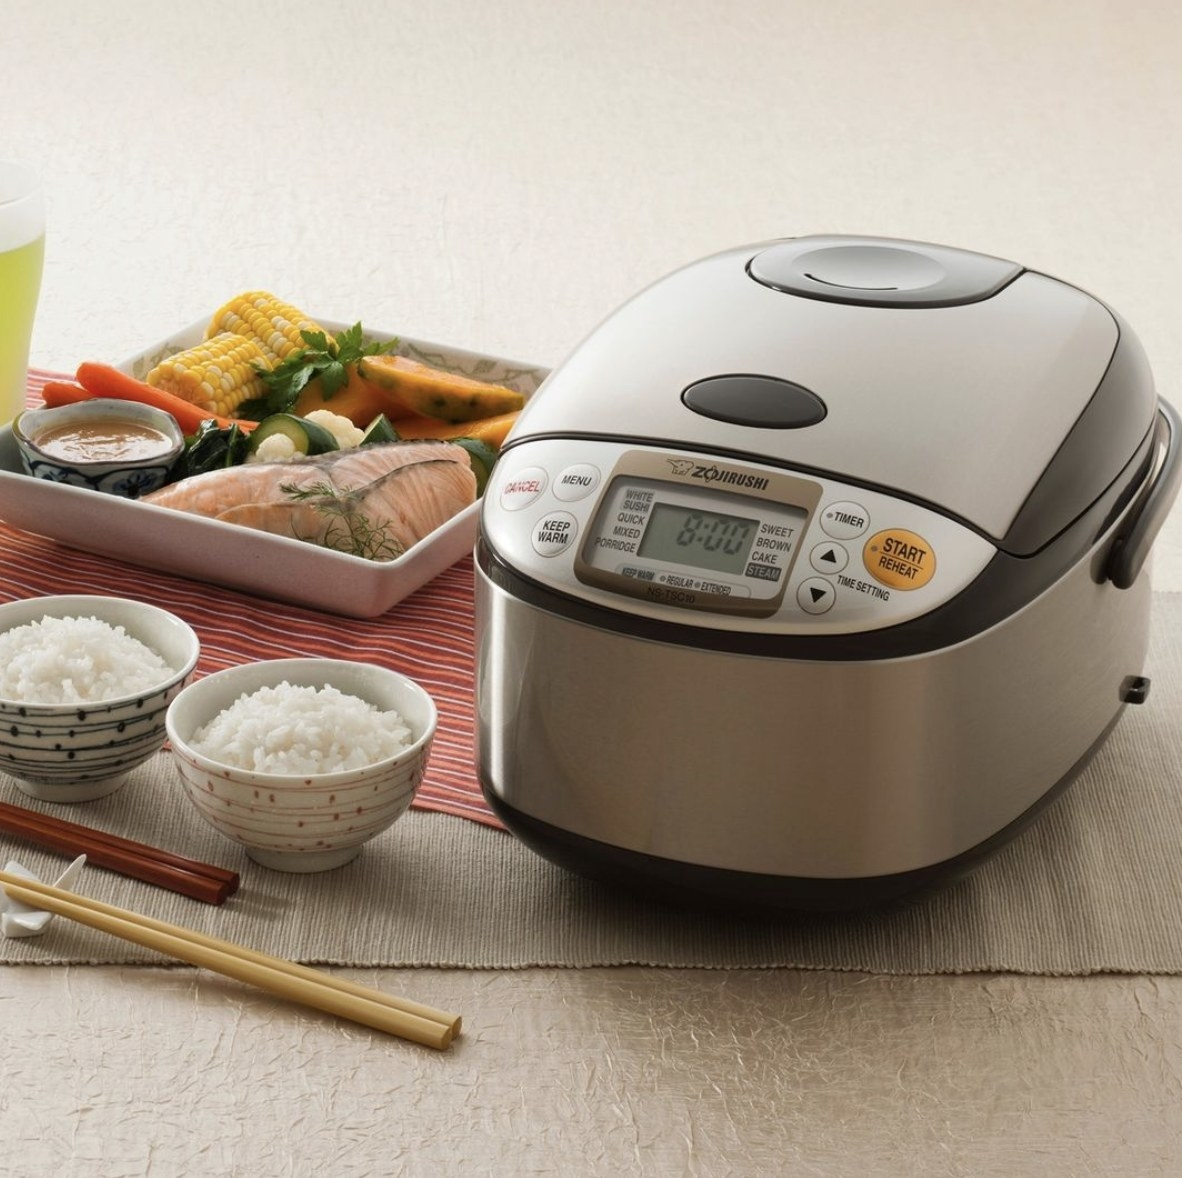 The rice cooker